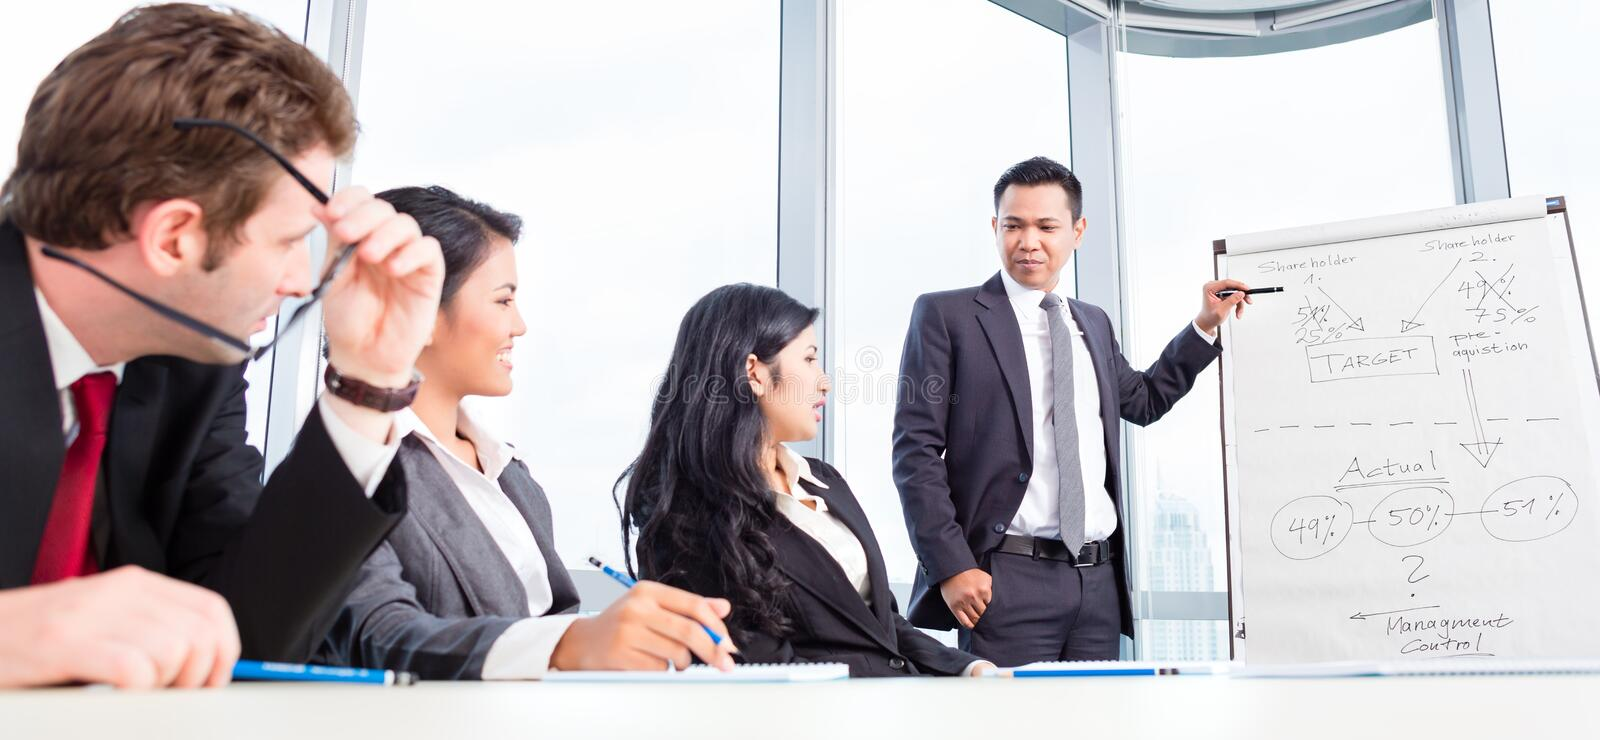 Business team discussing acquisition in meeting stock photography